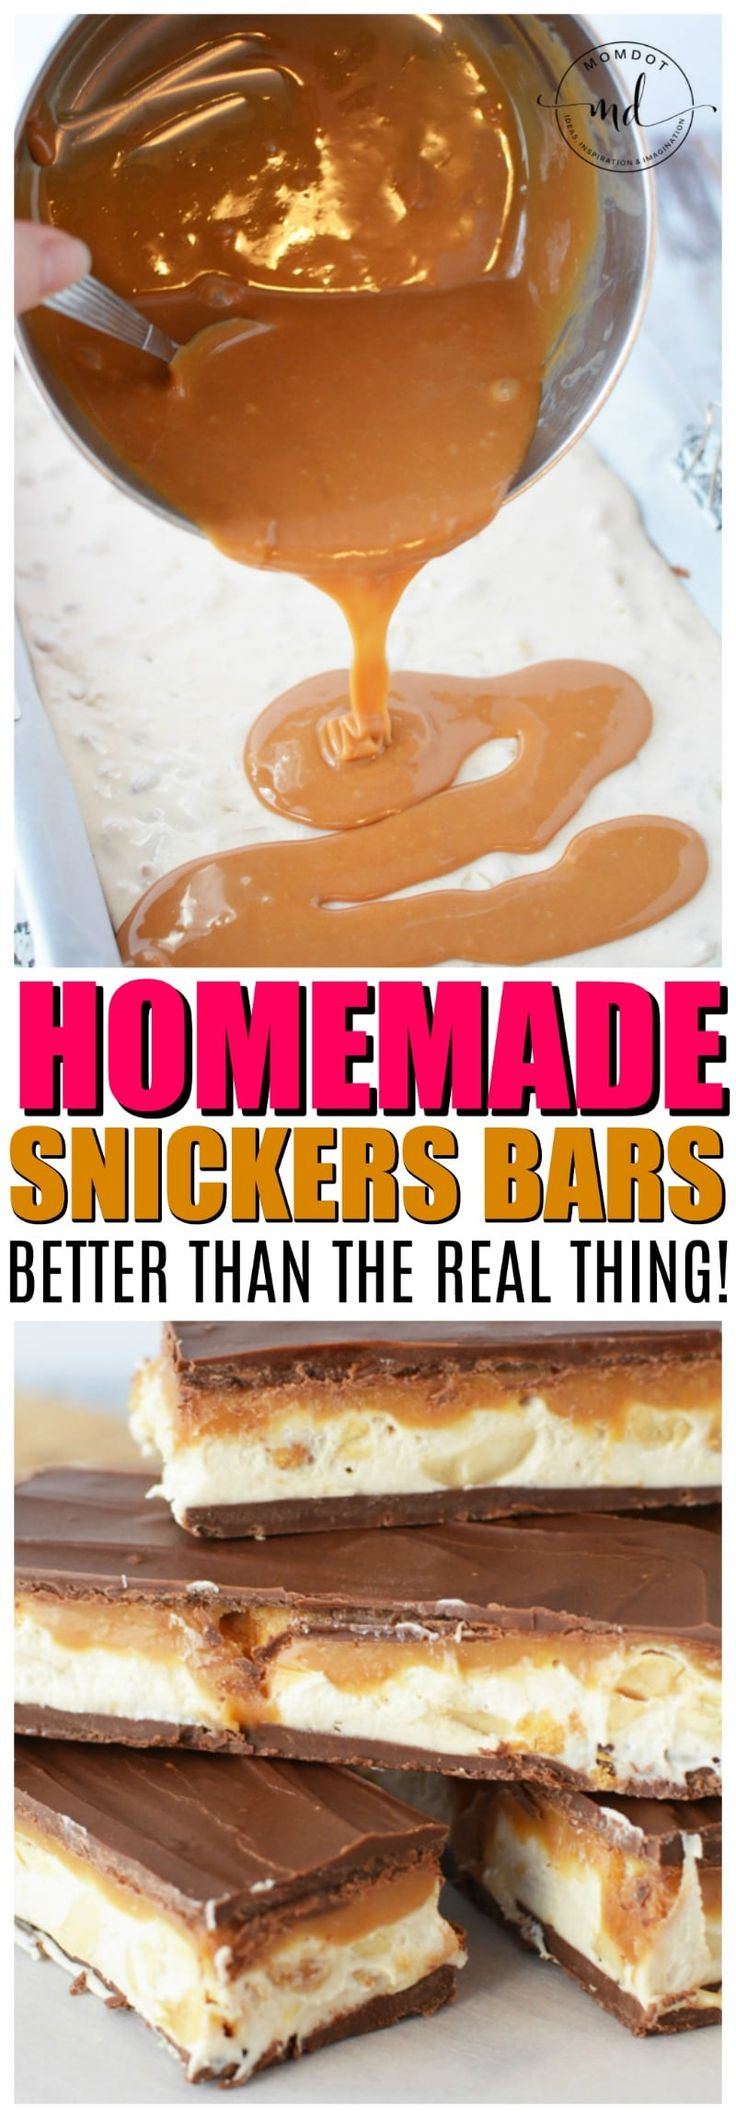 Homemade Snickers Bars Recipe that is Decadent and Rich